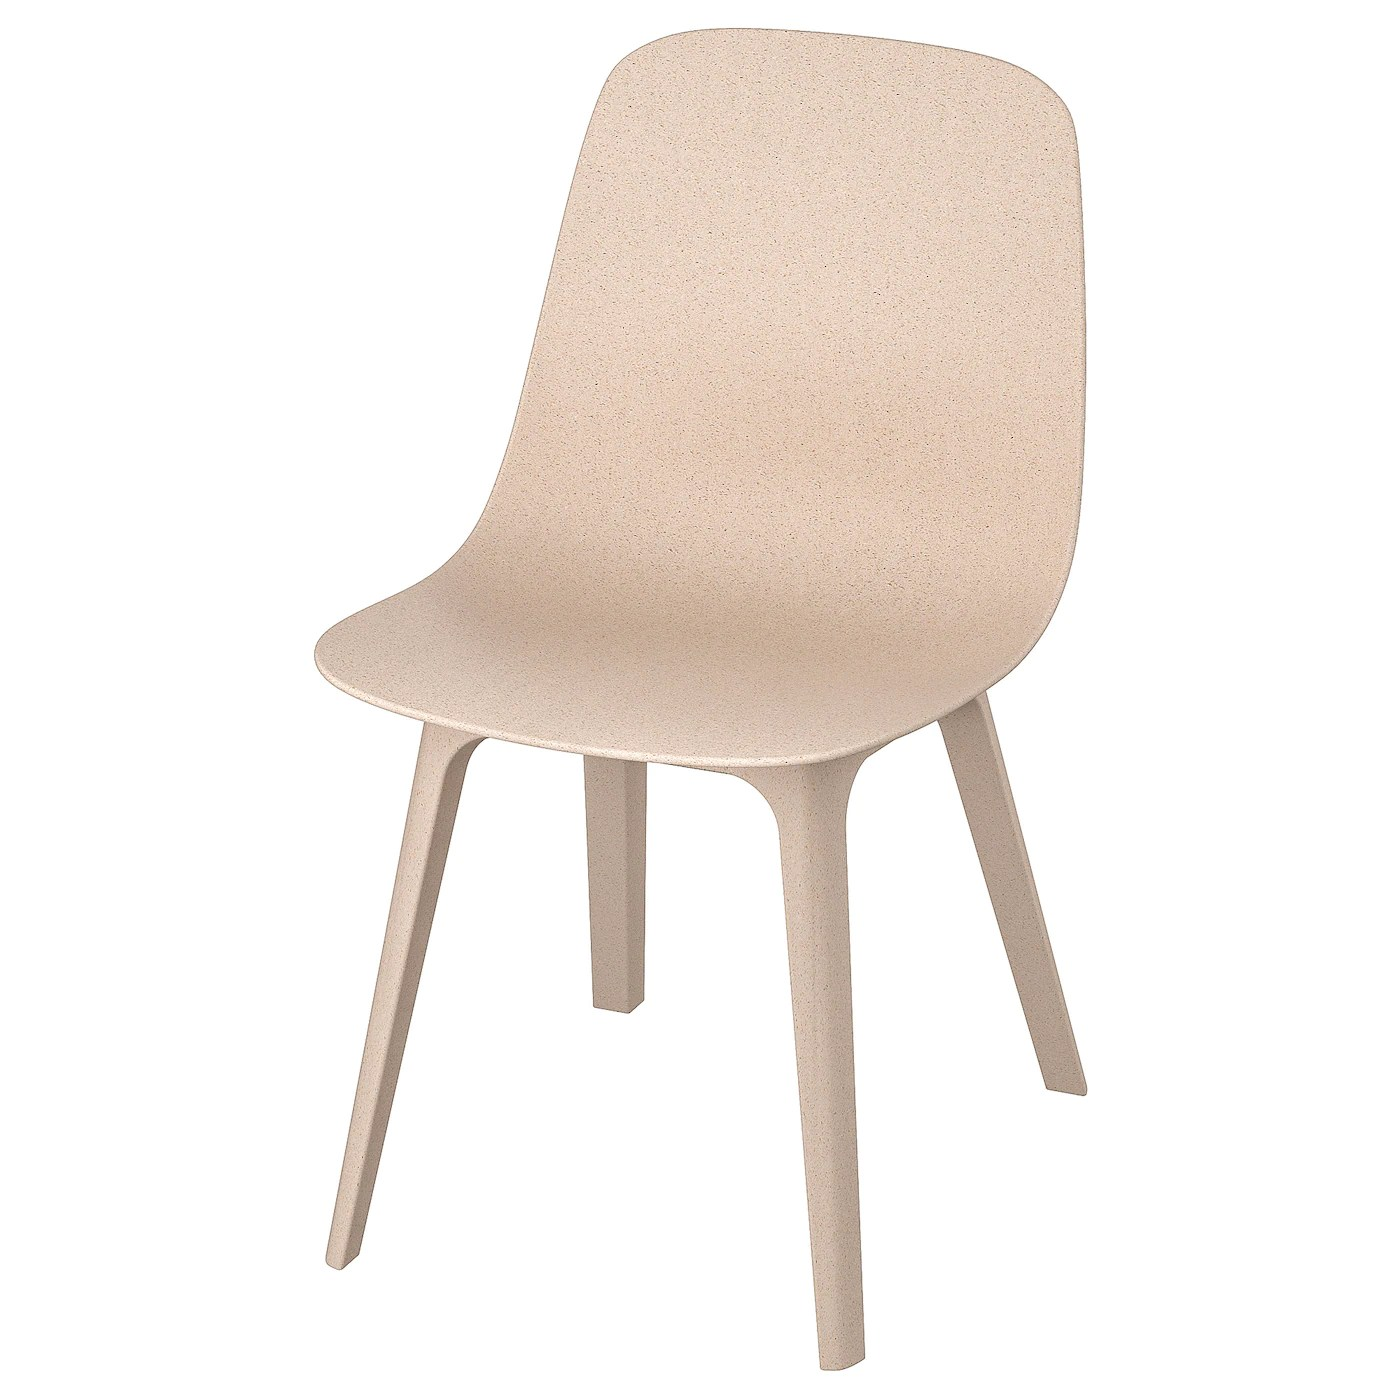 odger chaise blanc beige